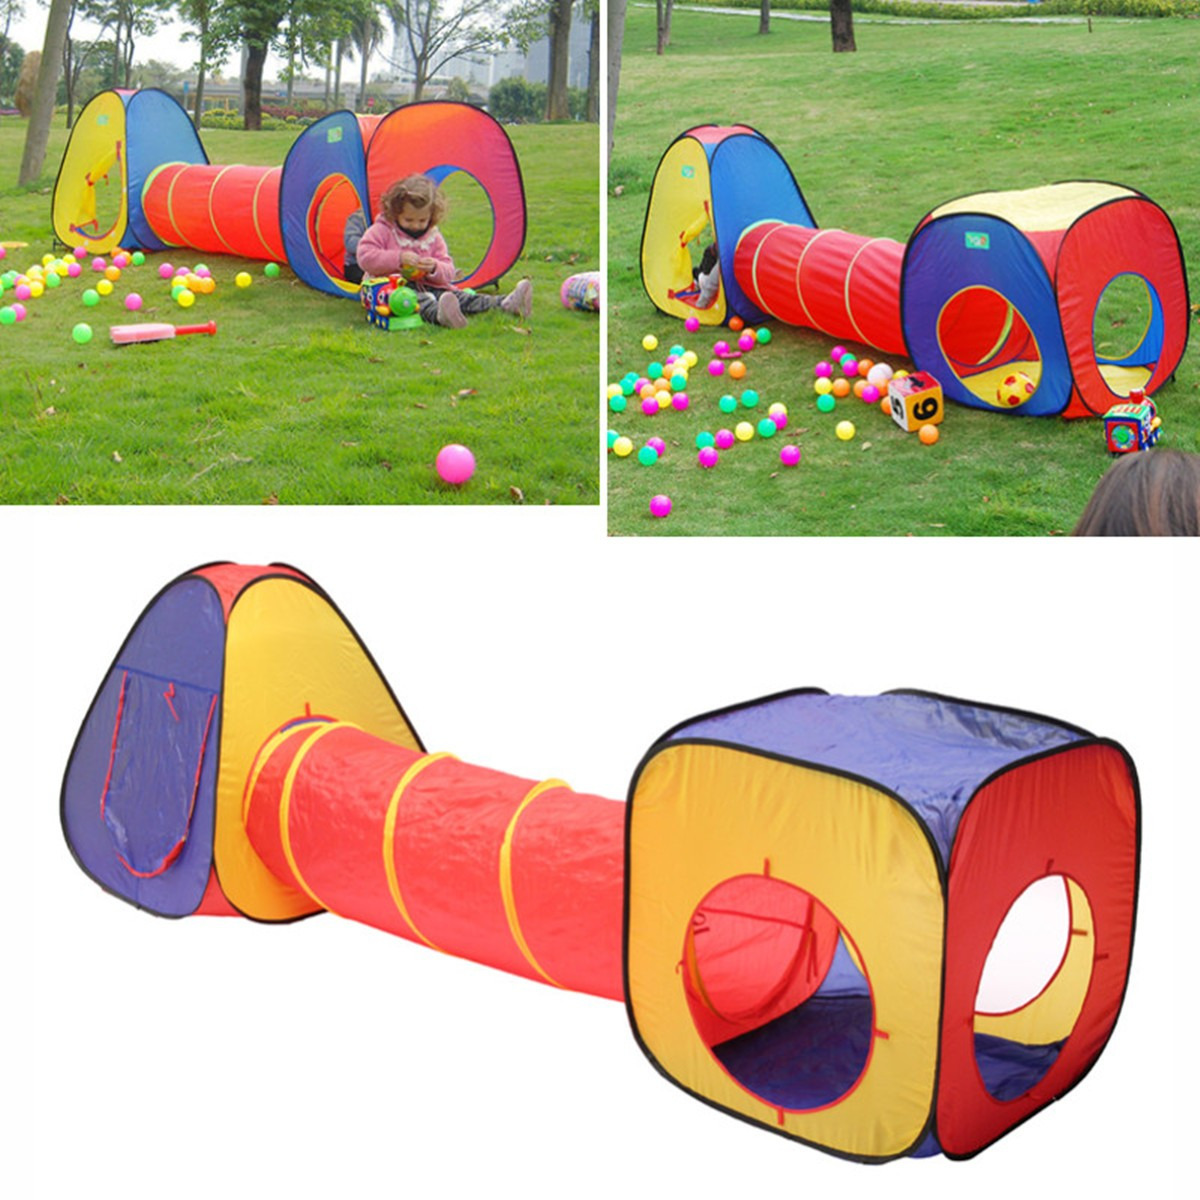 Portable Toys Tunnel Tent Pit Bal Pool Kids Tent Playhouse Children Ocean Play House Outdoor Sports Educational Toy